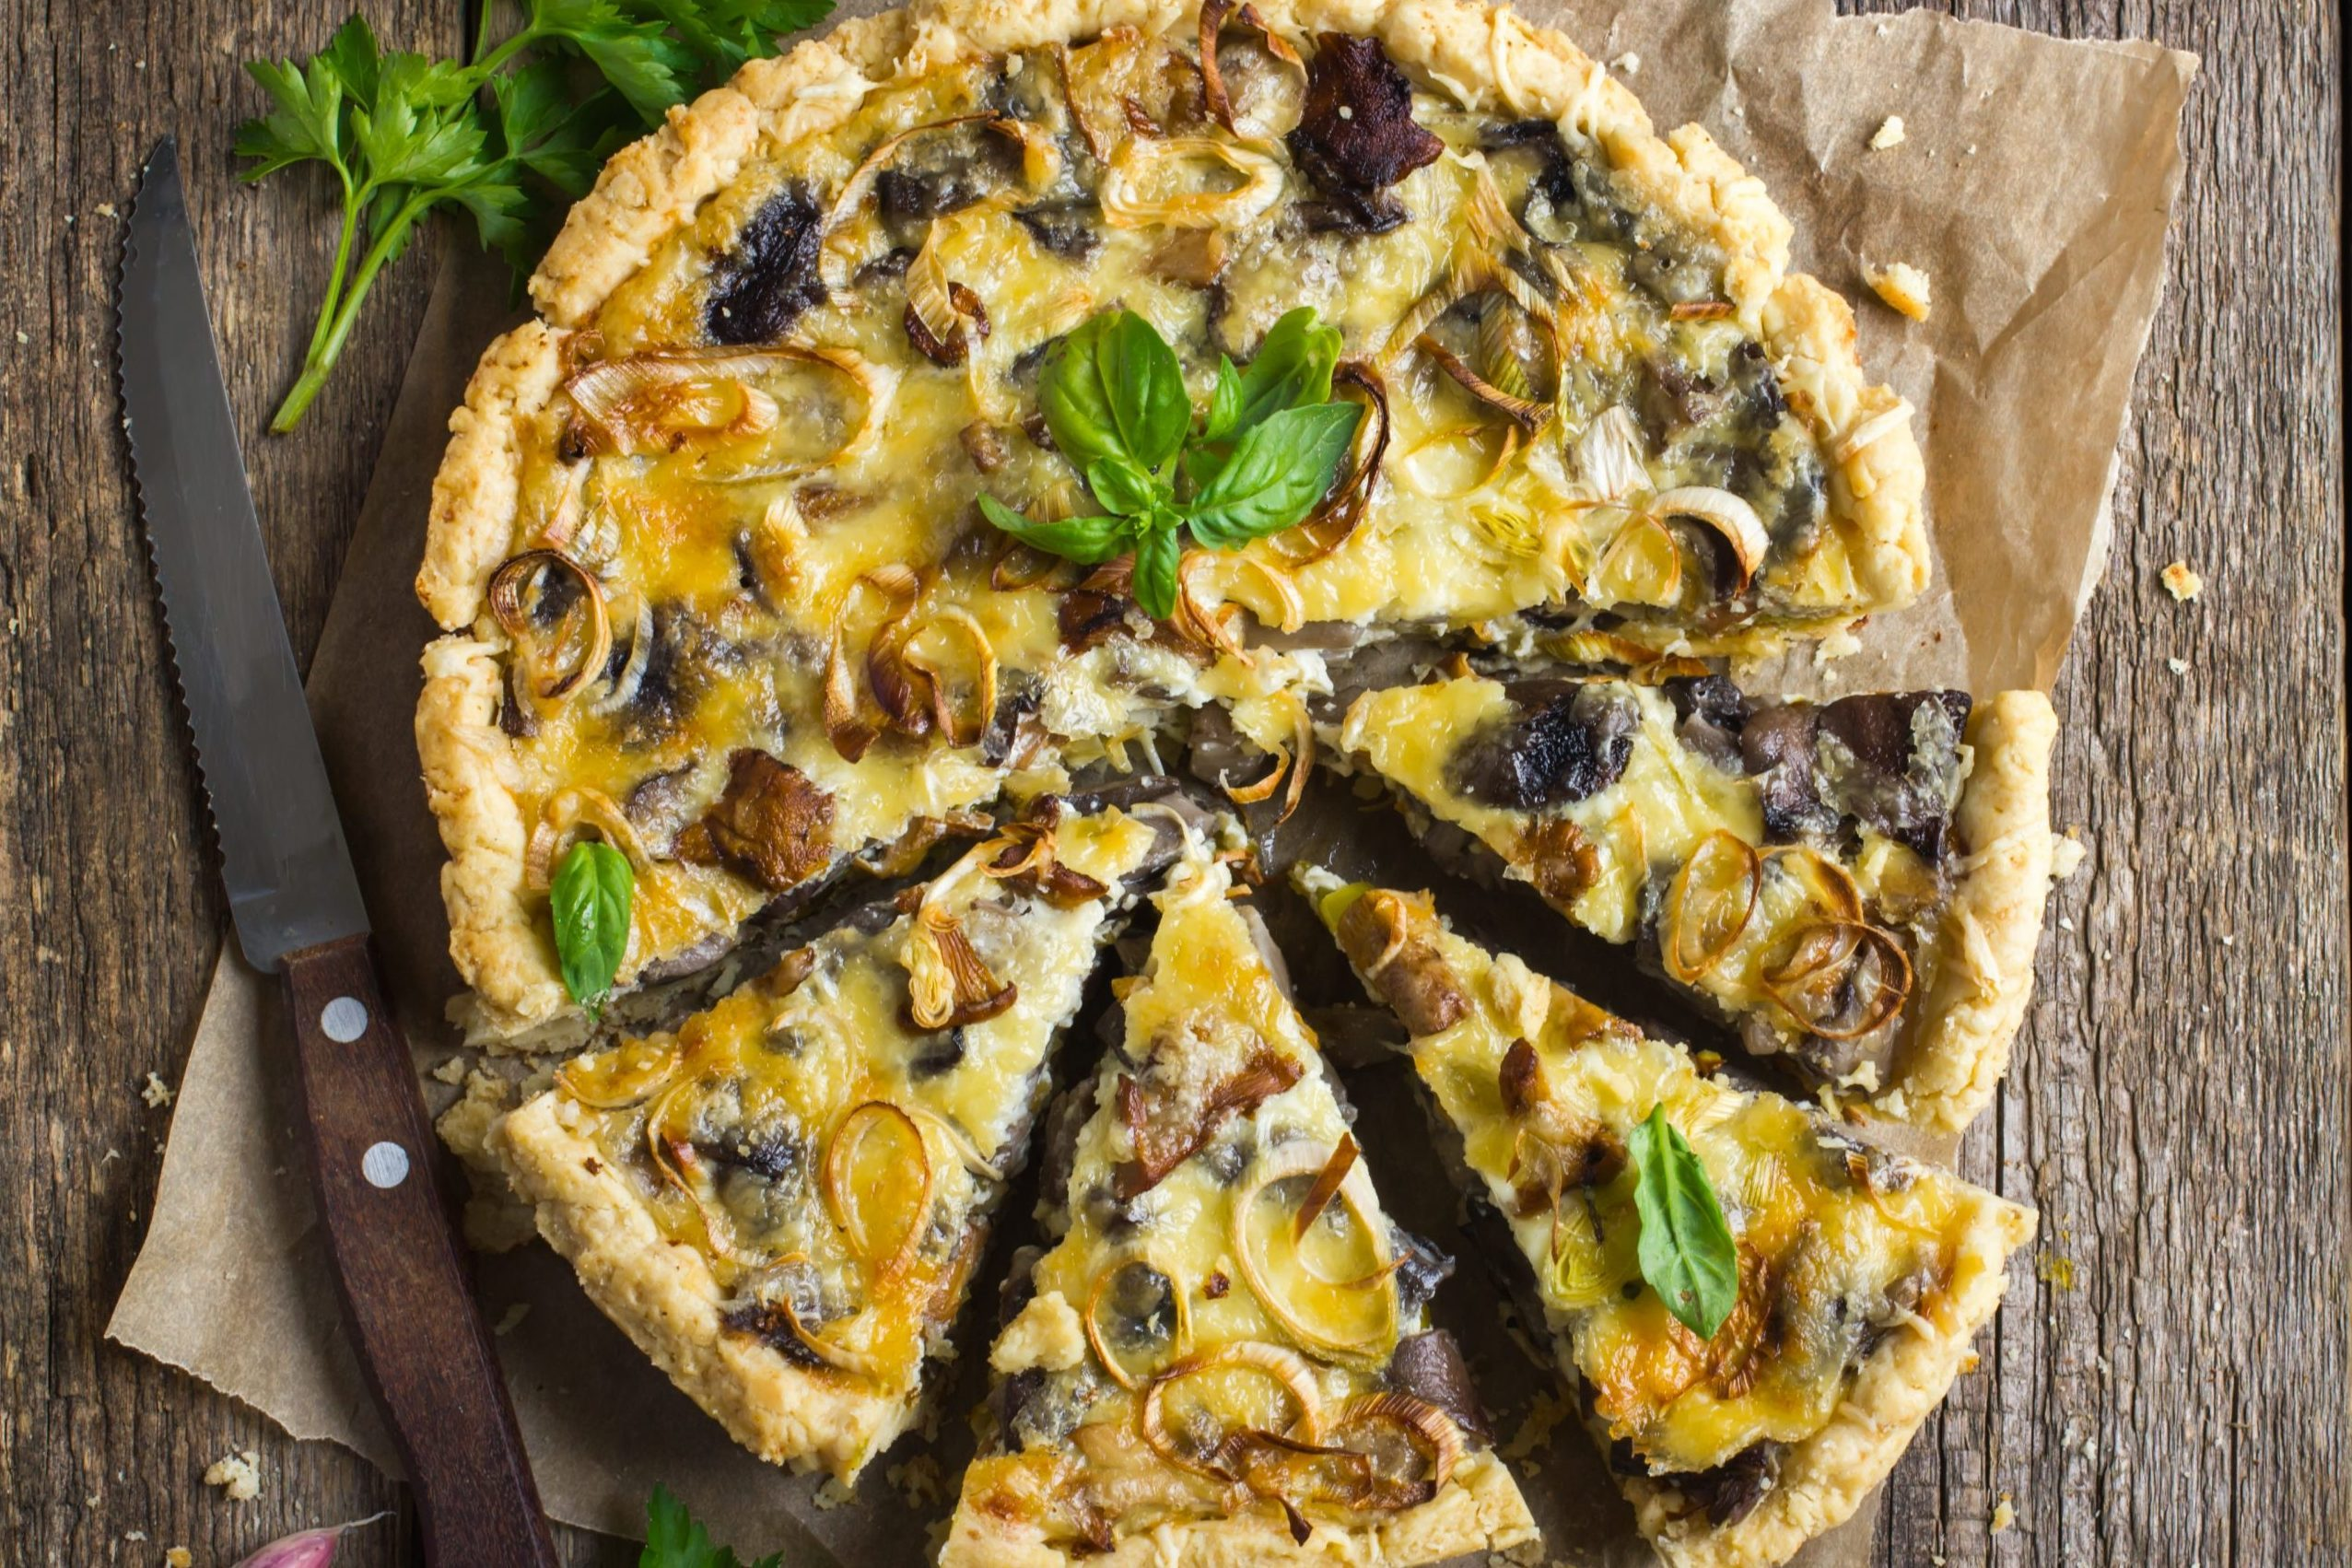 tart with mushrooms, leek and cheese on rustic background